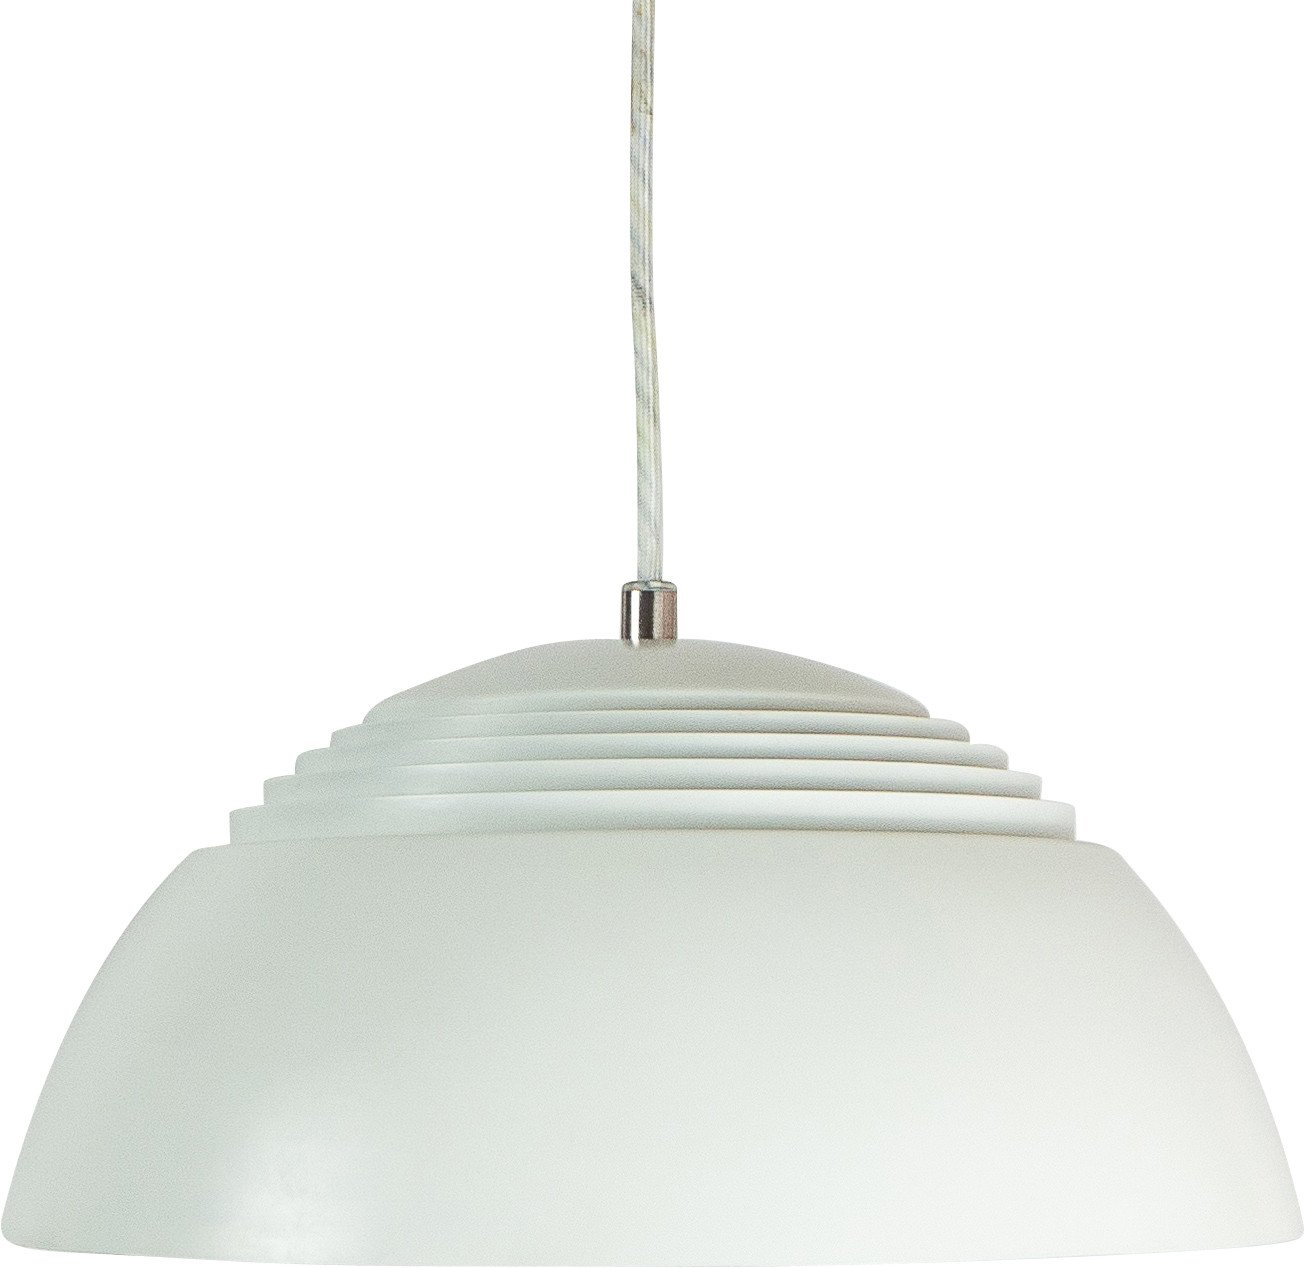 Pendant Lamp by A. Jacobsen for Louis Poulsen, Denmark, 1960s